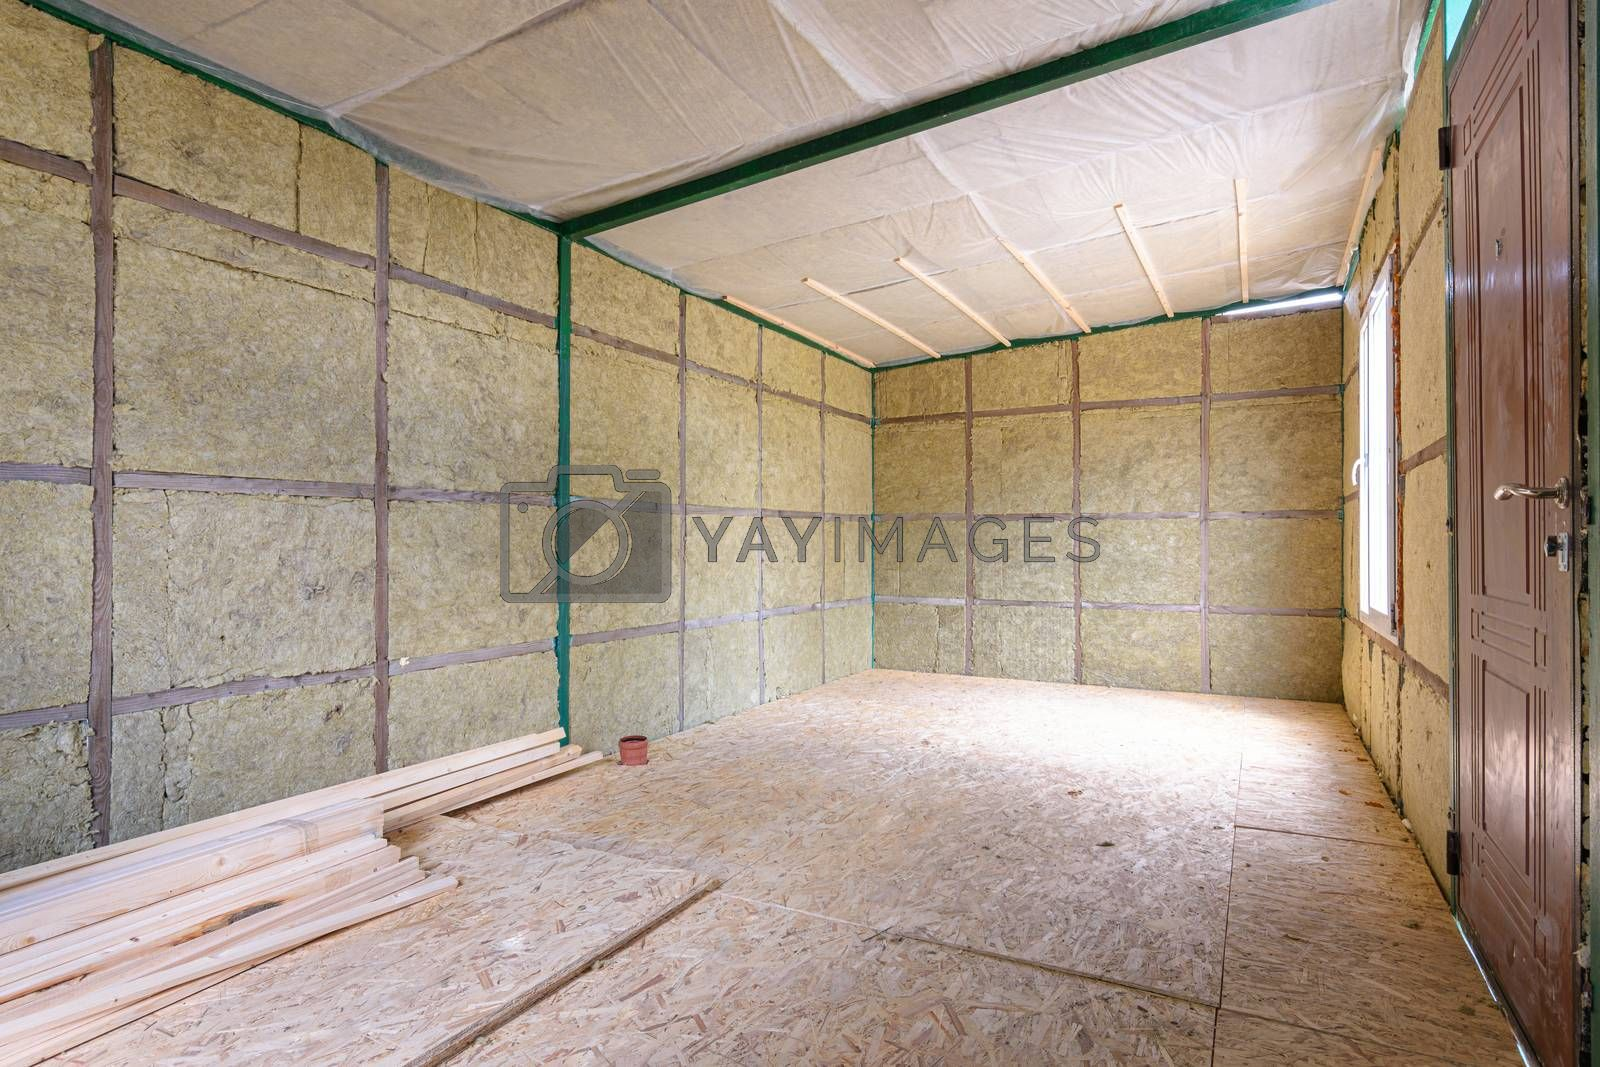 The interior of a suburban room under construction, insulated from the inside with soft thermal insulation